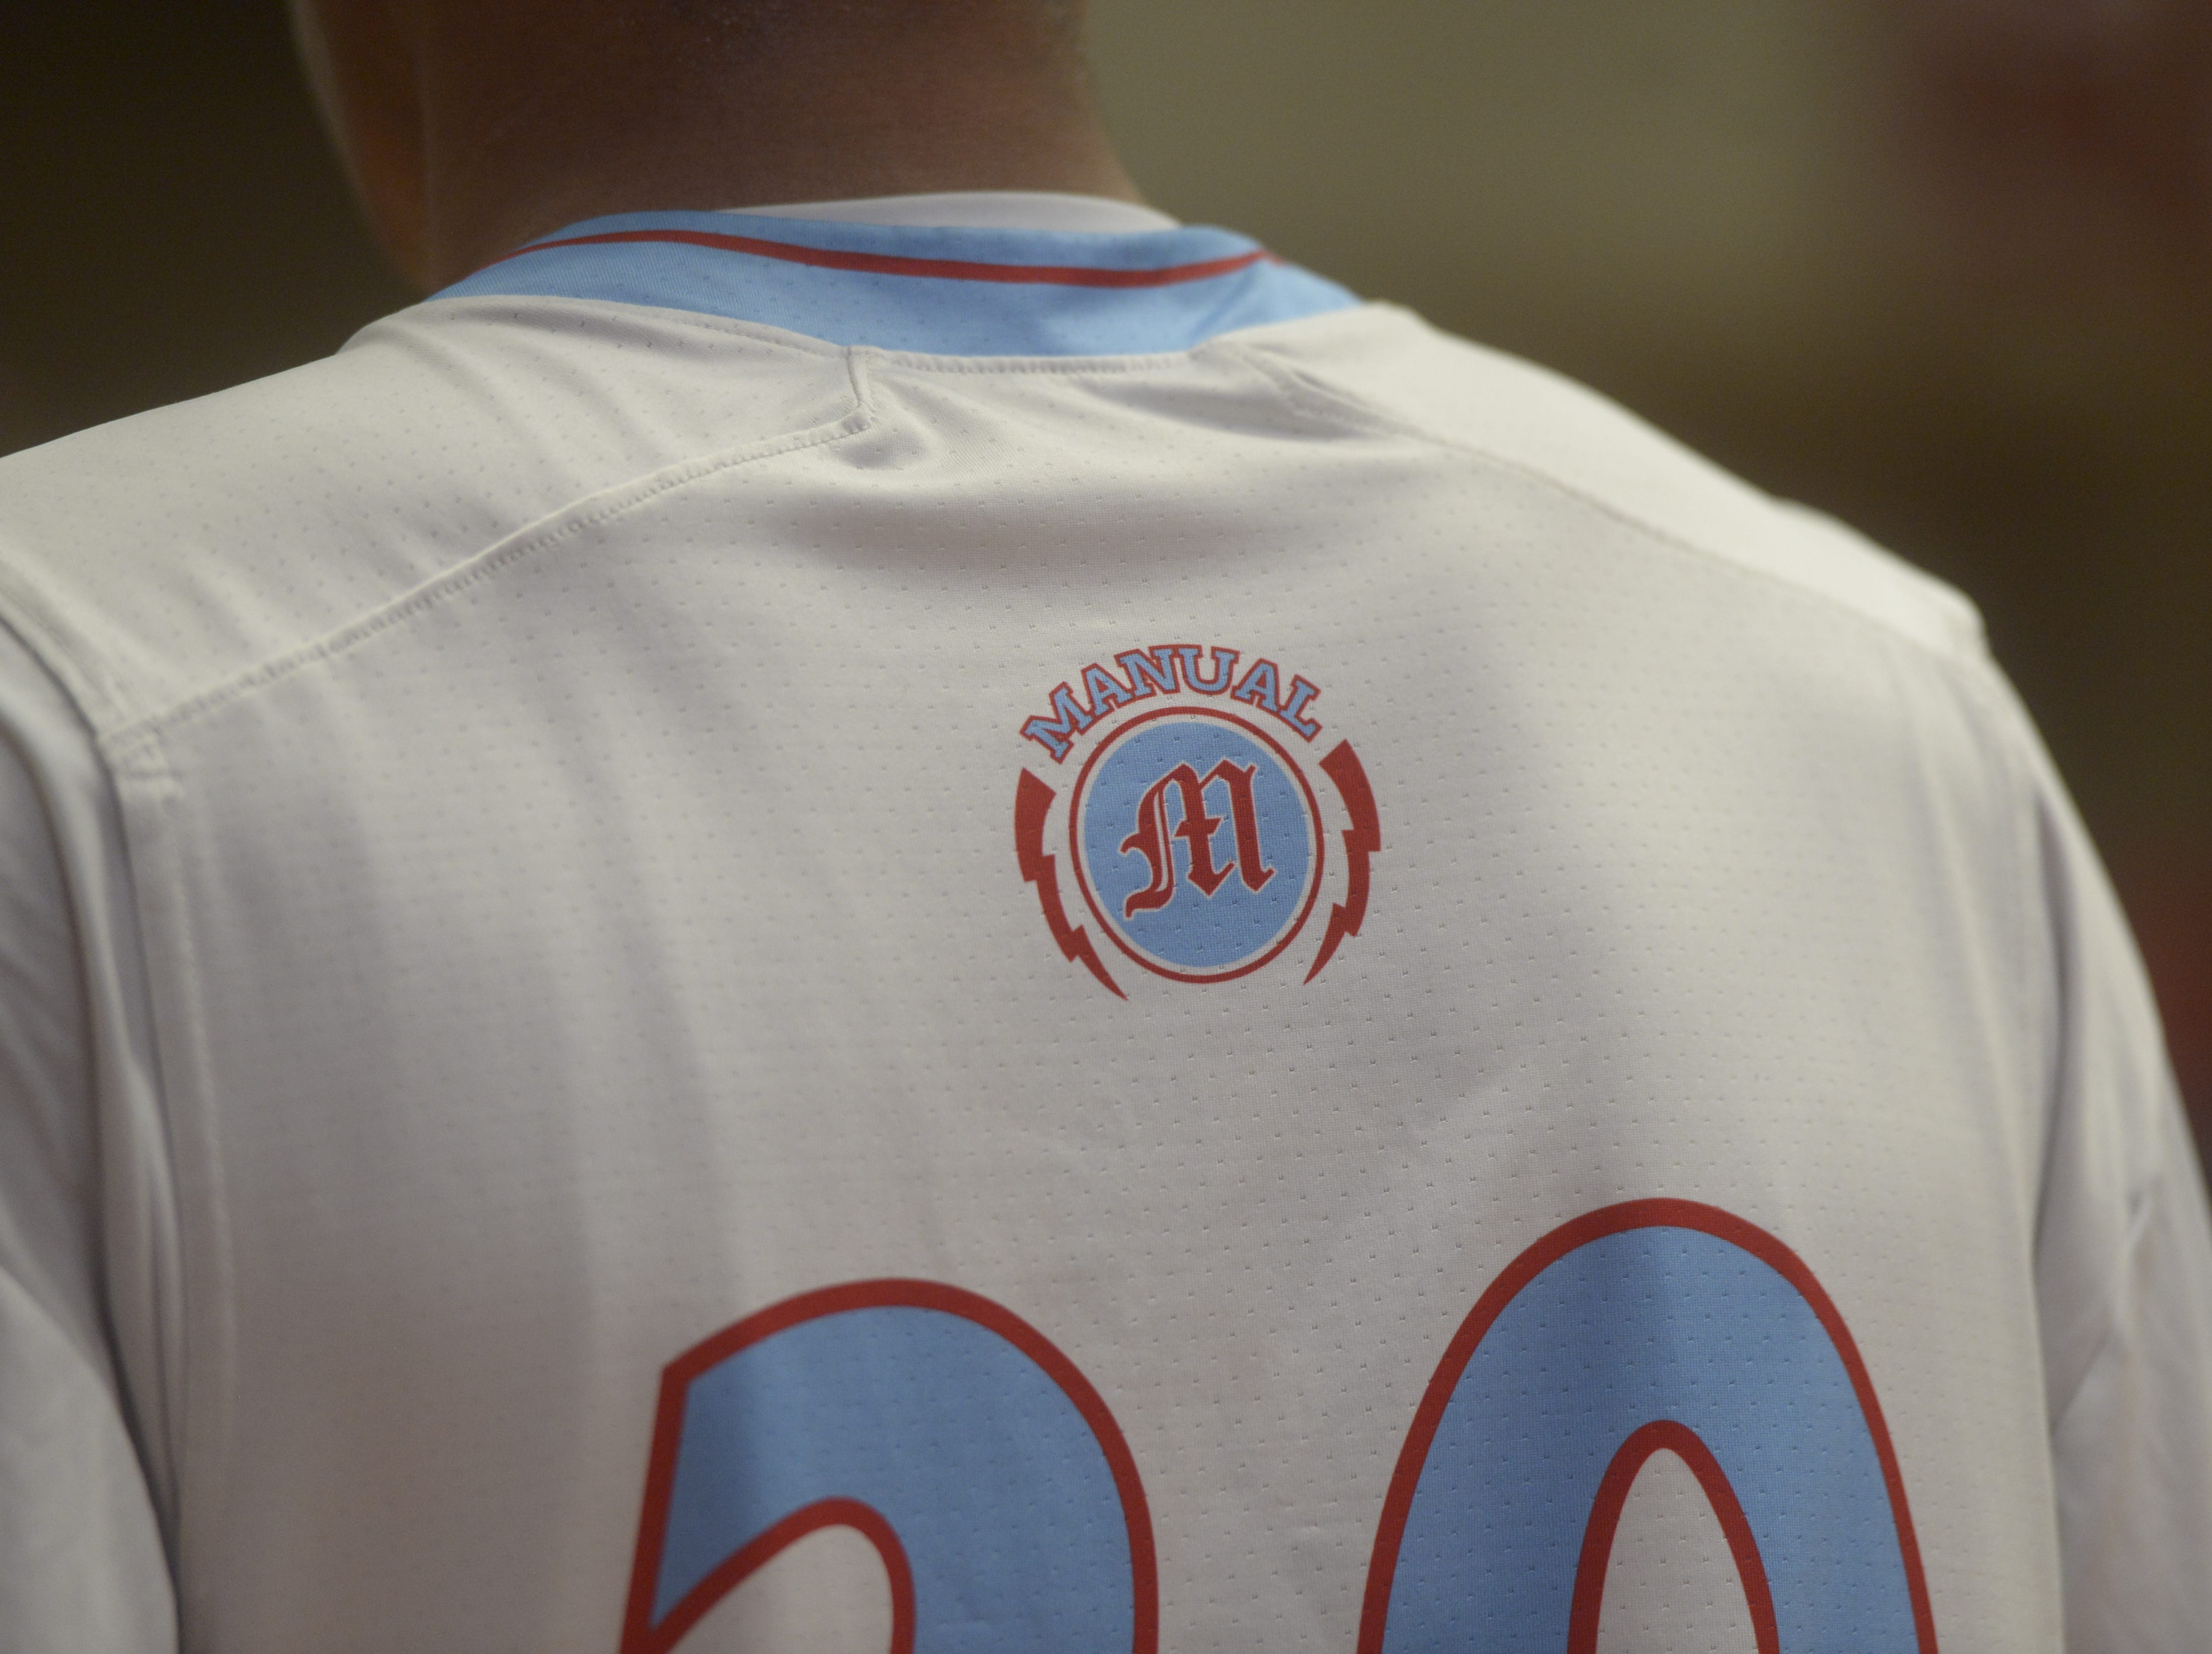 The Manual logo on the back of a jersey during a Class 3A quarterfinals game at the University of Denver on Thursday, March 7, 2019.